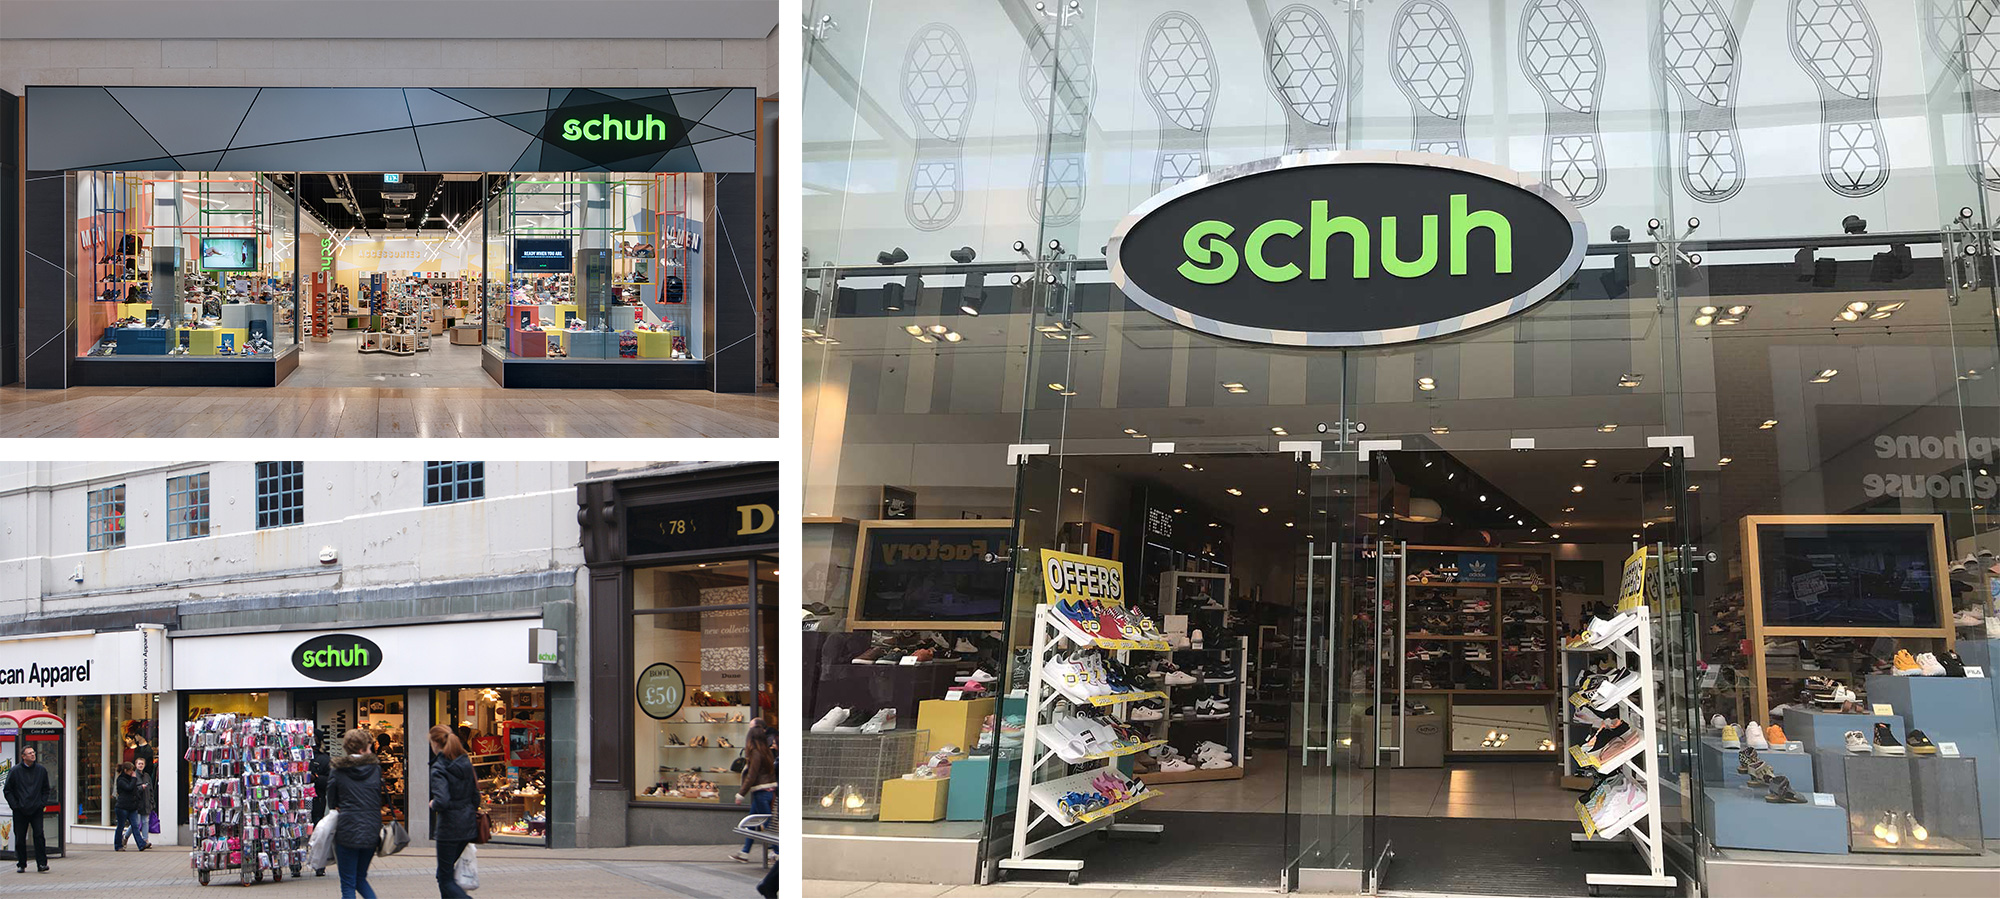 New Logo and Identity for Schuh by Snask